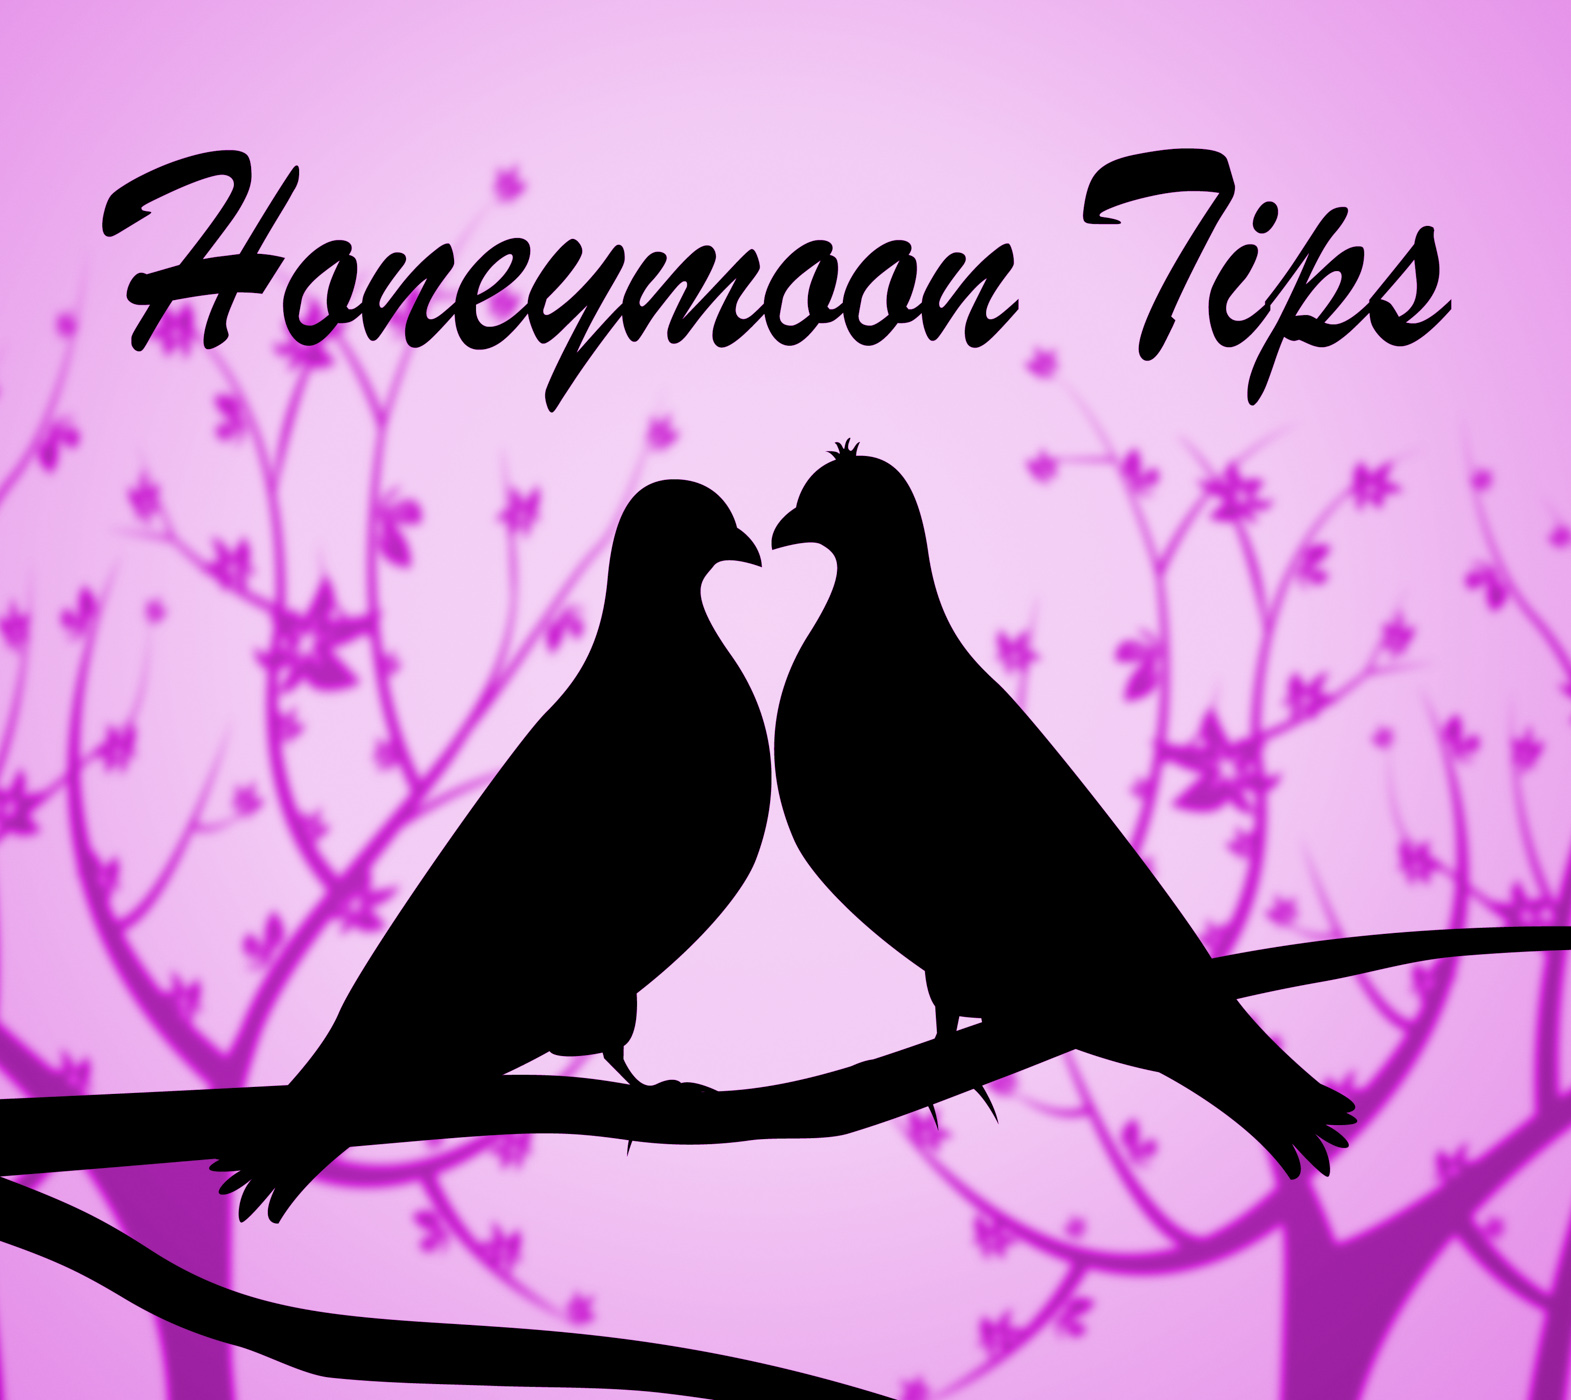 Honeymoon Tips Means Vacational Destinations And Guidance, Advice, Pointers, Vacationing, Vacational, HQ Photo